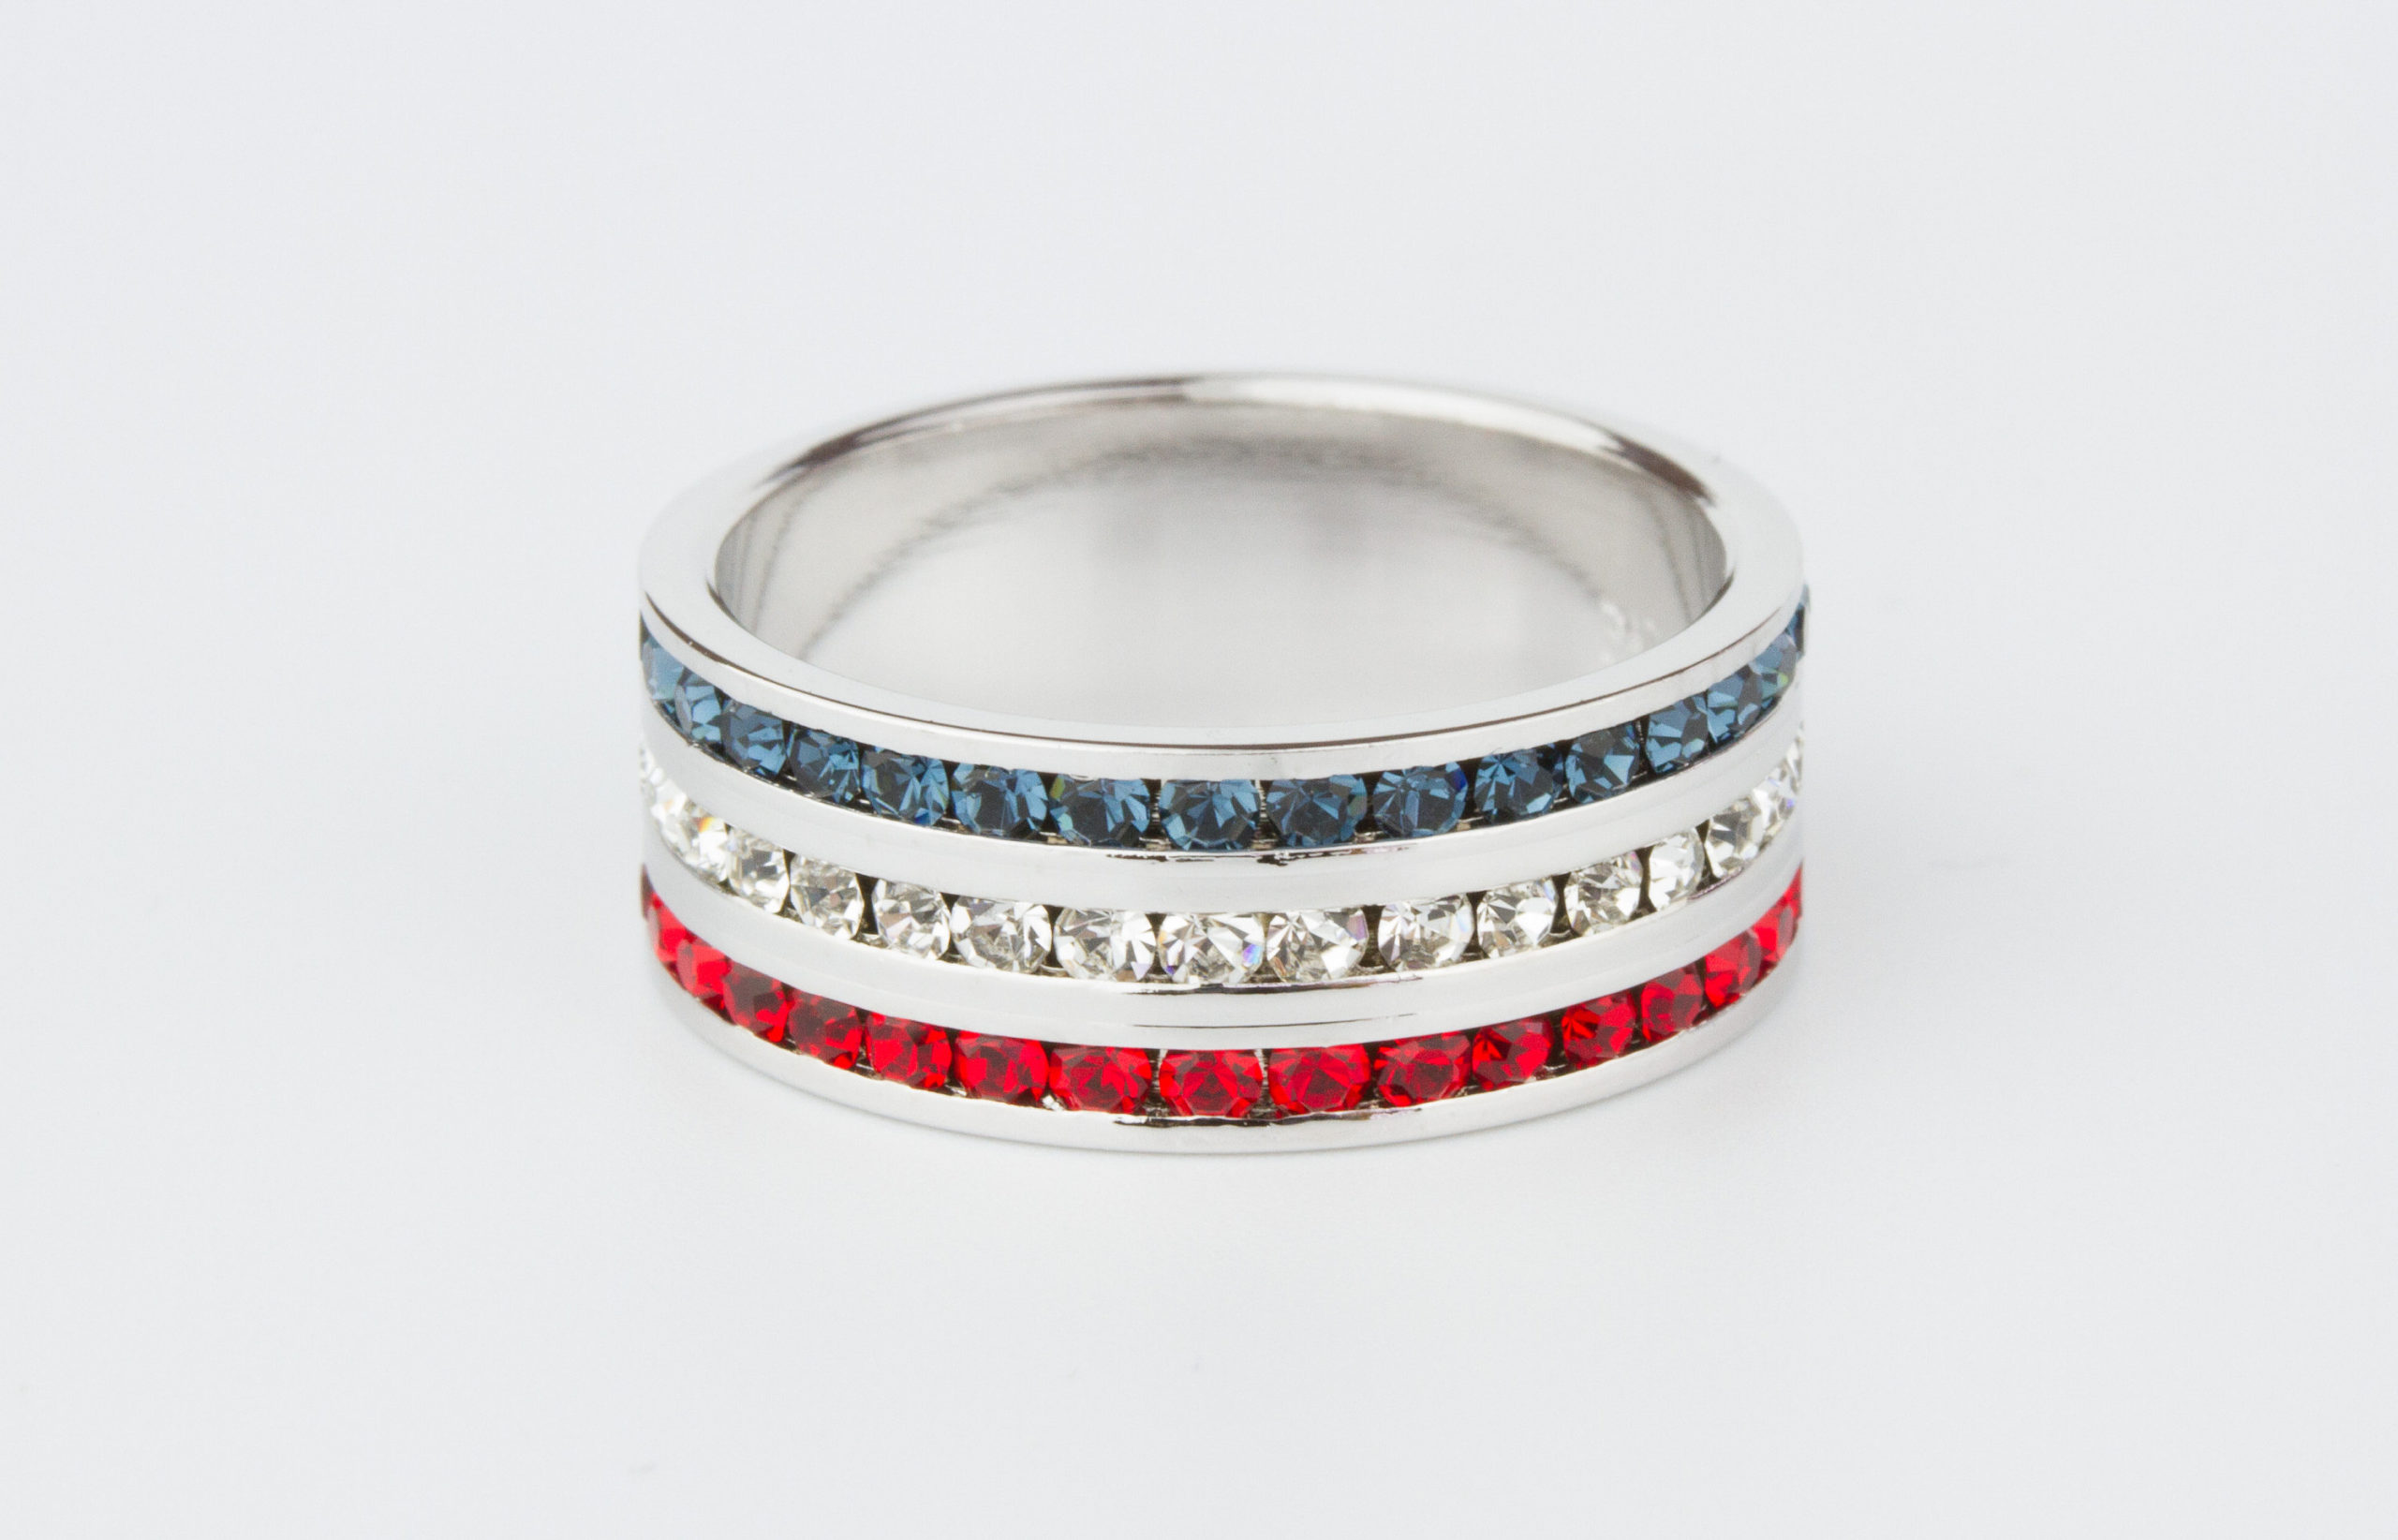 It is a graphic of I Love America! Sterling Silver, Red, White and Blue Swarovski Crystal Eternity Ring - wedding band - engagement ring